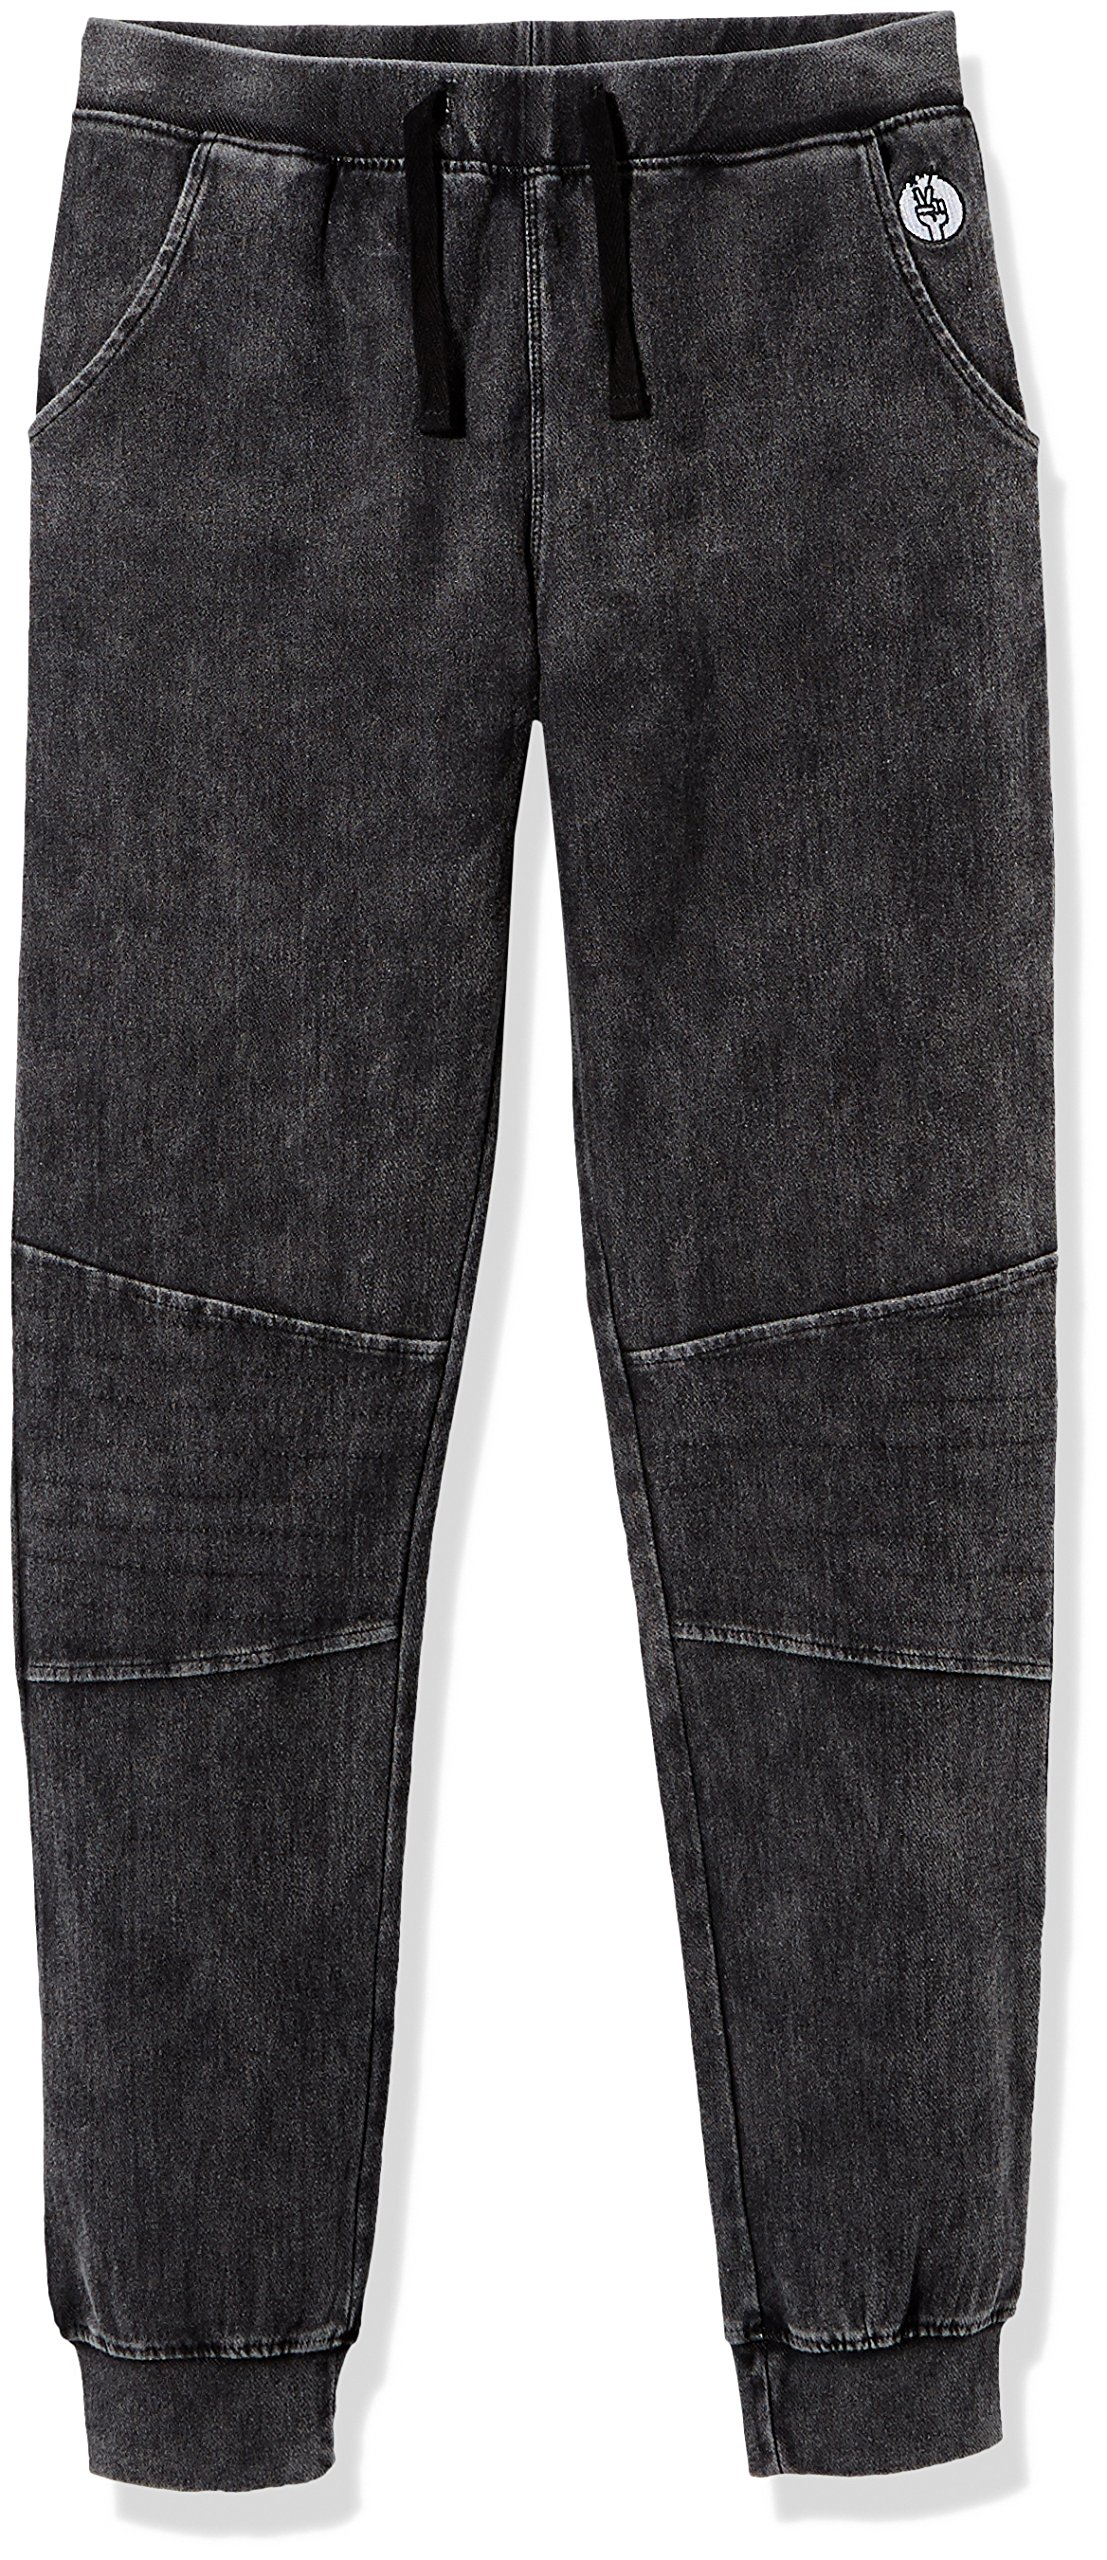 Kid Nation Kids' Cotton Stretch Washed Knit Pull-On Moto Jogger for Boys or Girls XL Black Washed